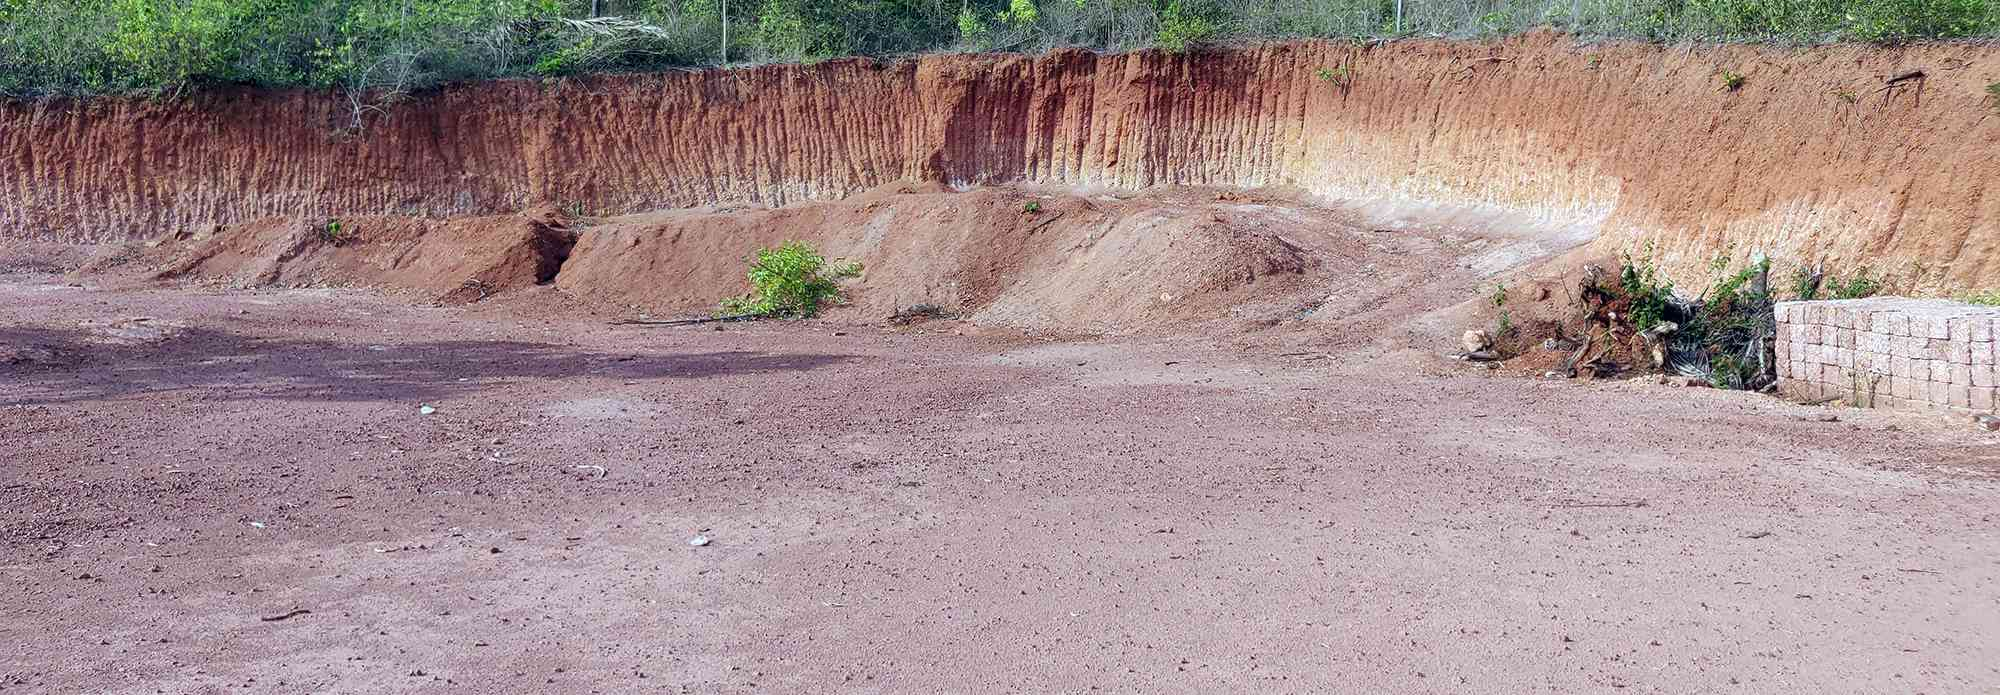 A destroyed laterite hill in Karivellur, Kannur. Photo credit: TA Ameerudheen